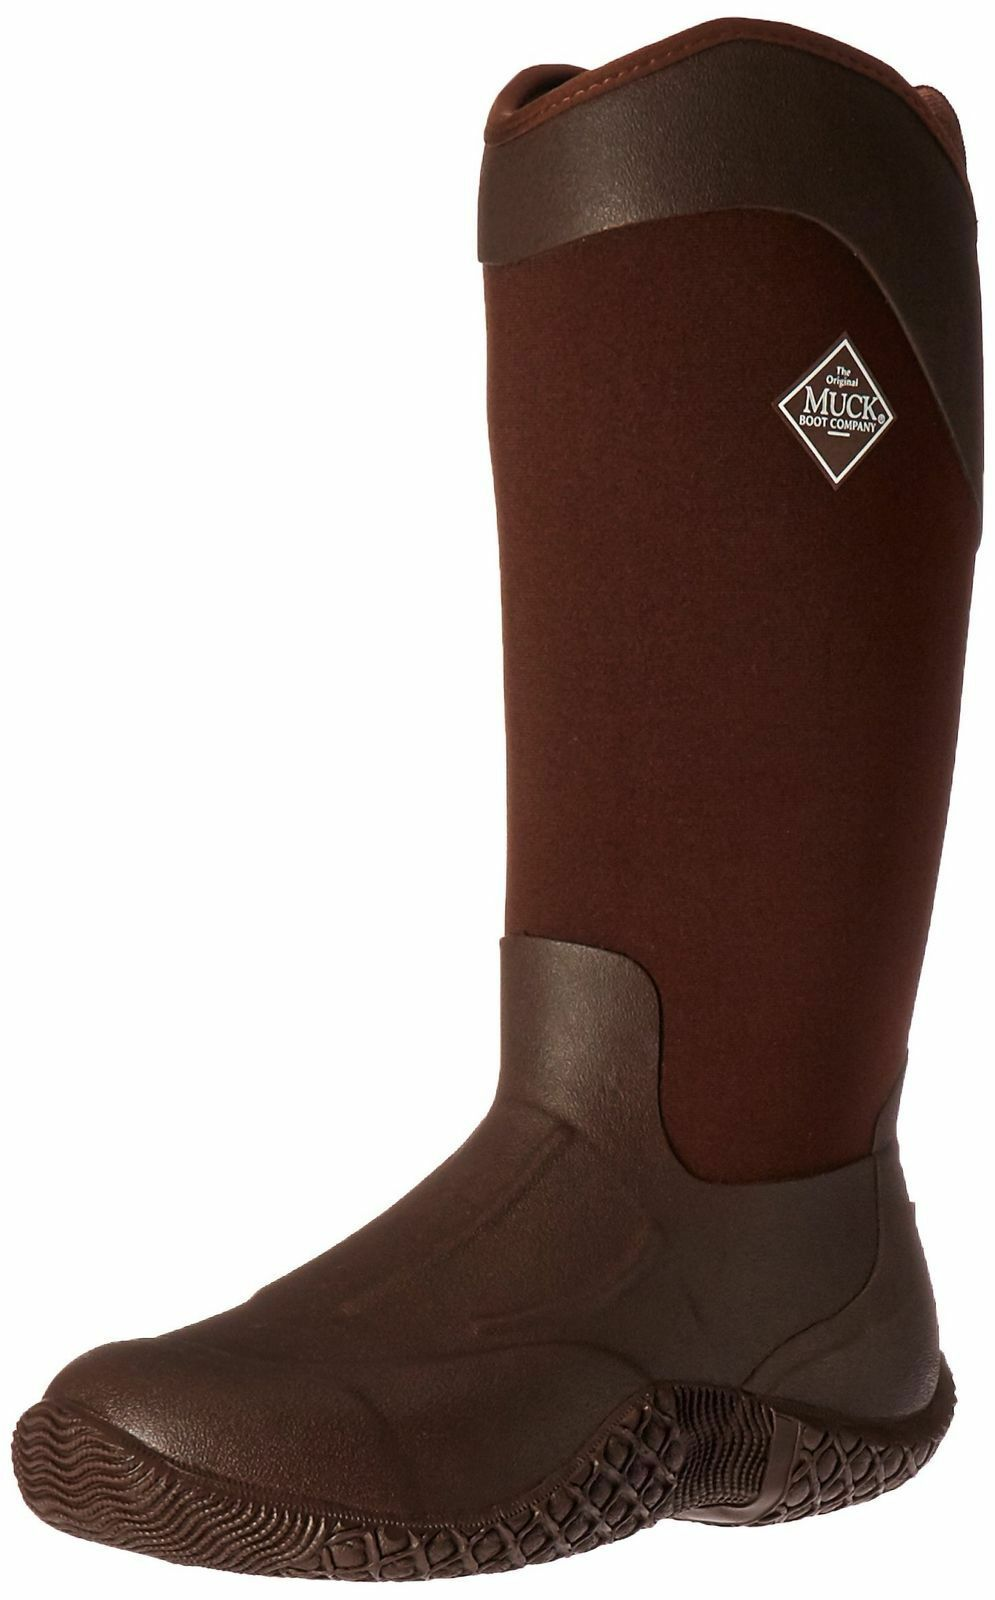 Muck Boots Women's Tack II High Boot-Chocolate Sizes 7,8,9,10,11's